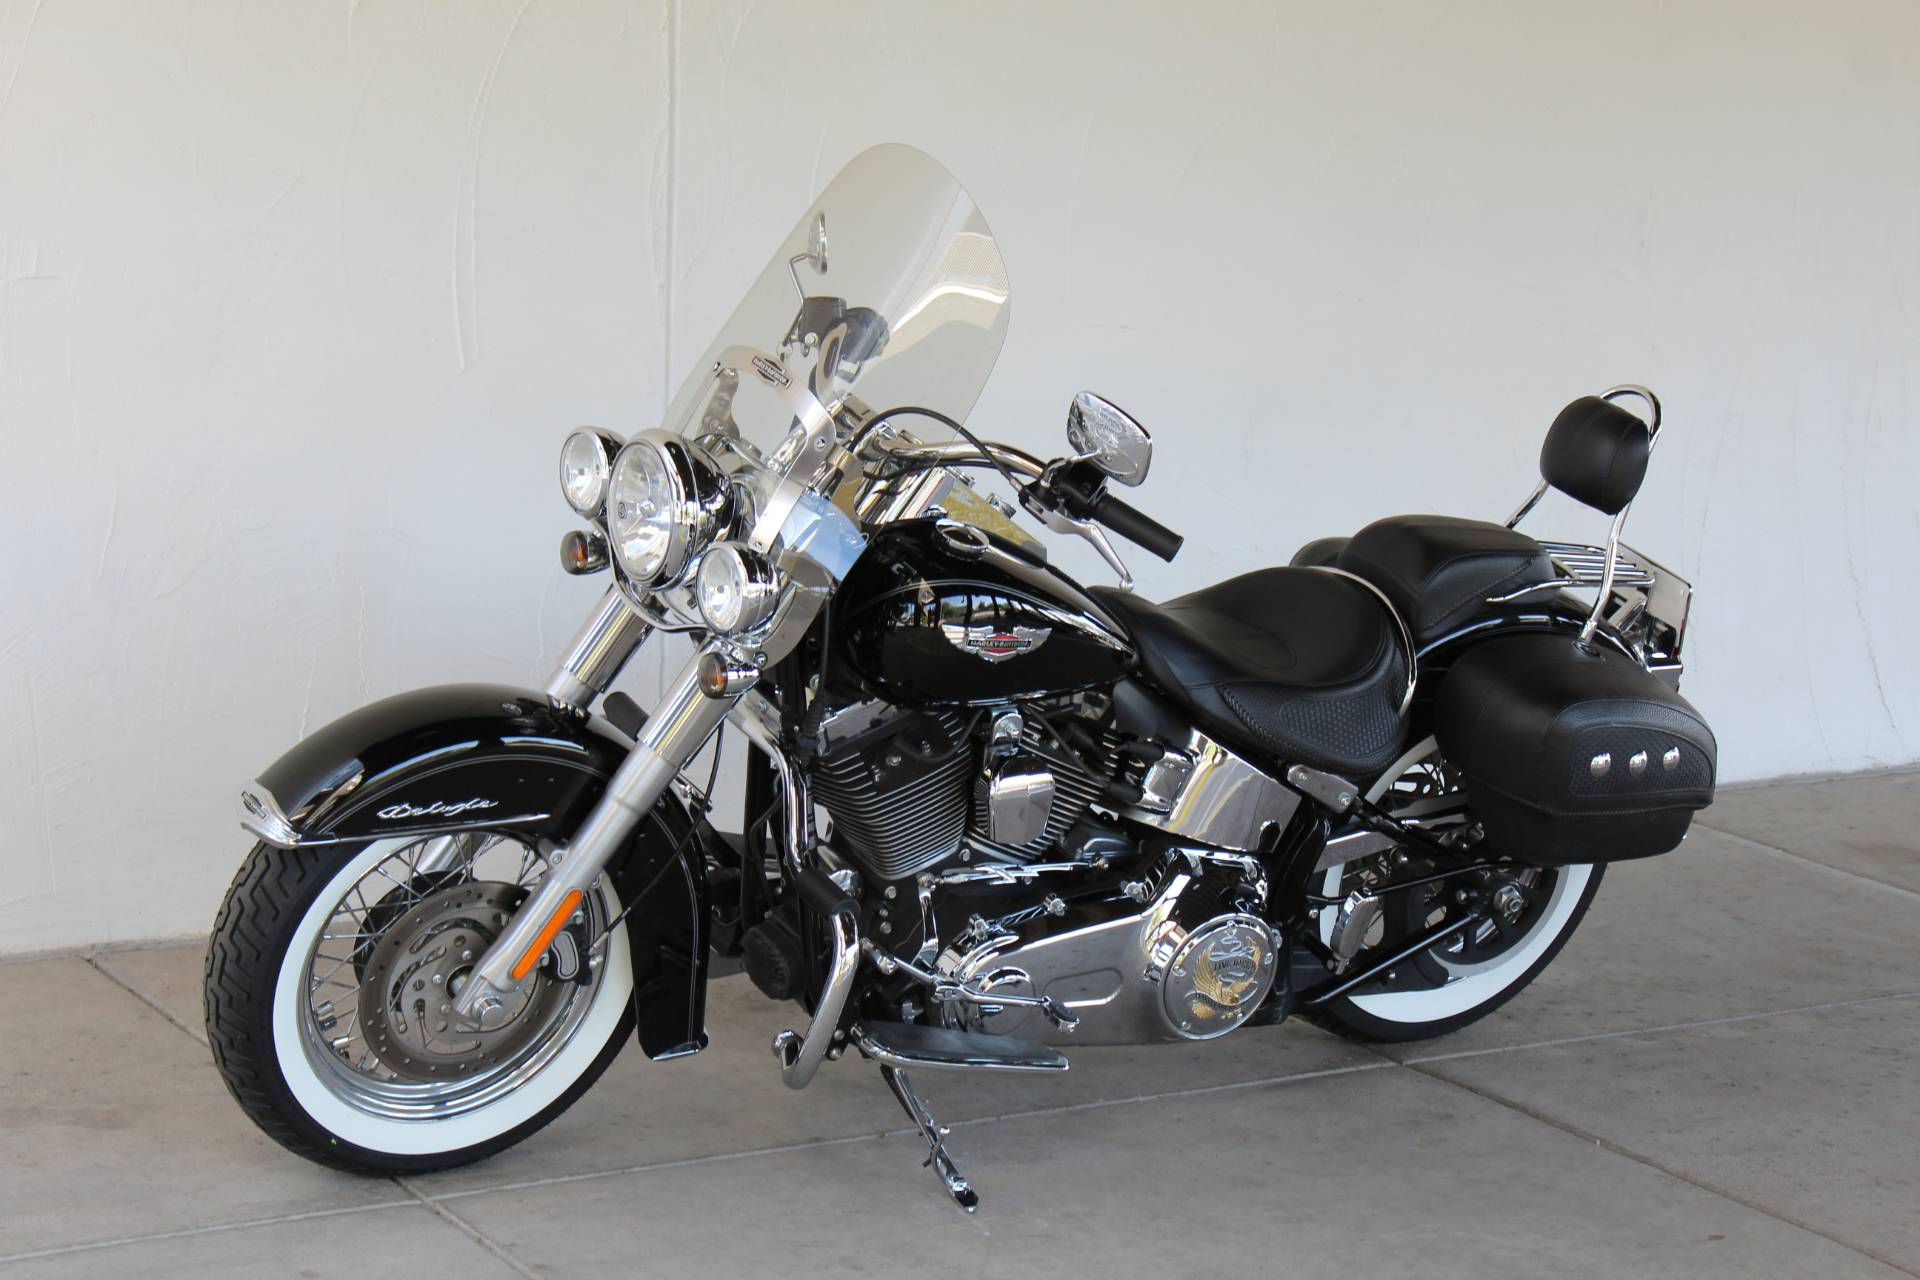 2013 Harley-Davidson Softail Deluxe 1